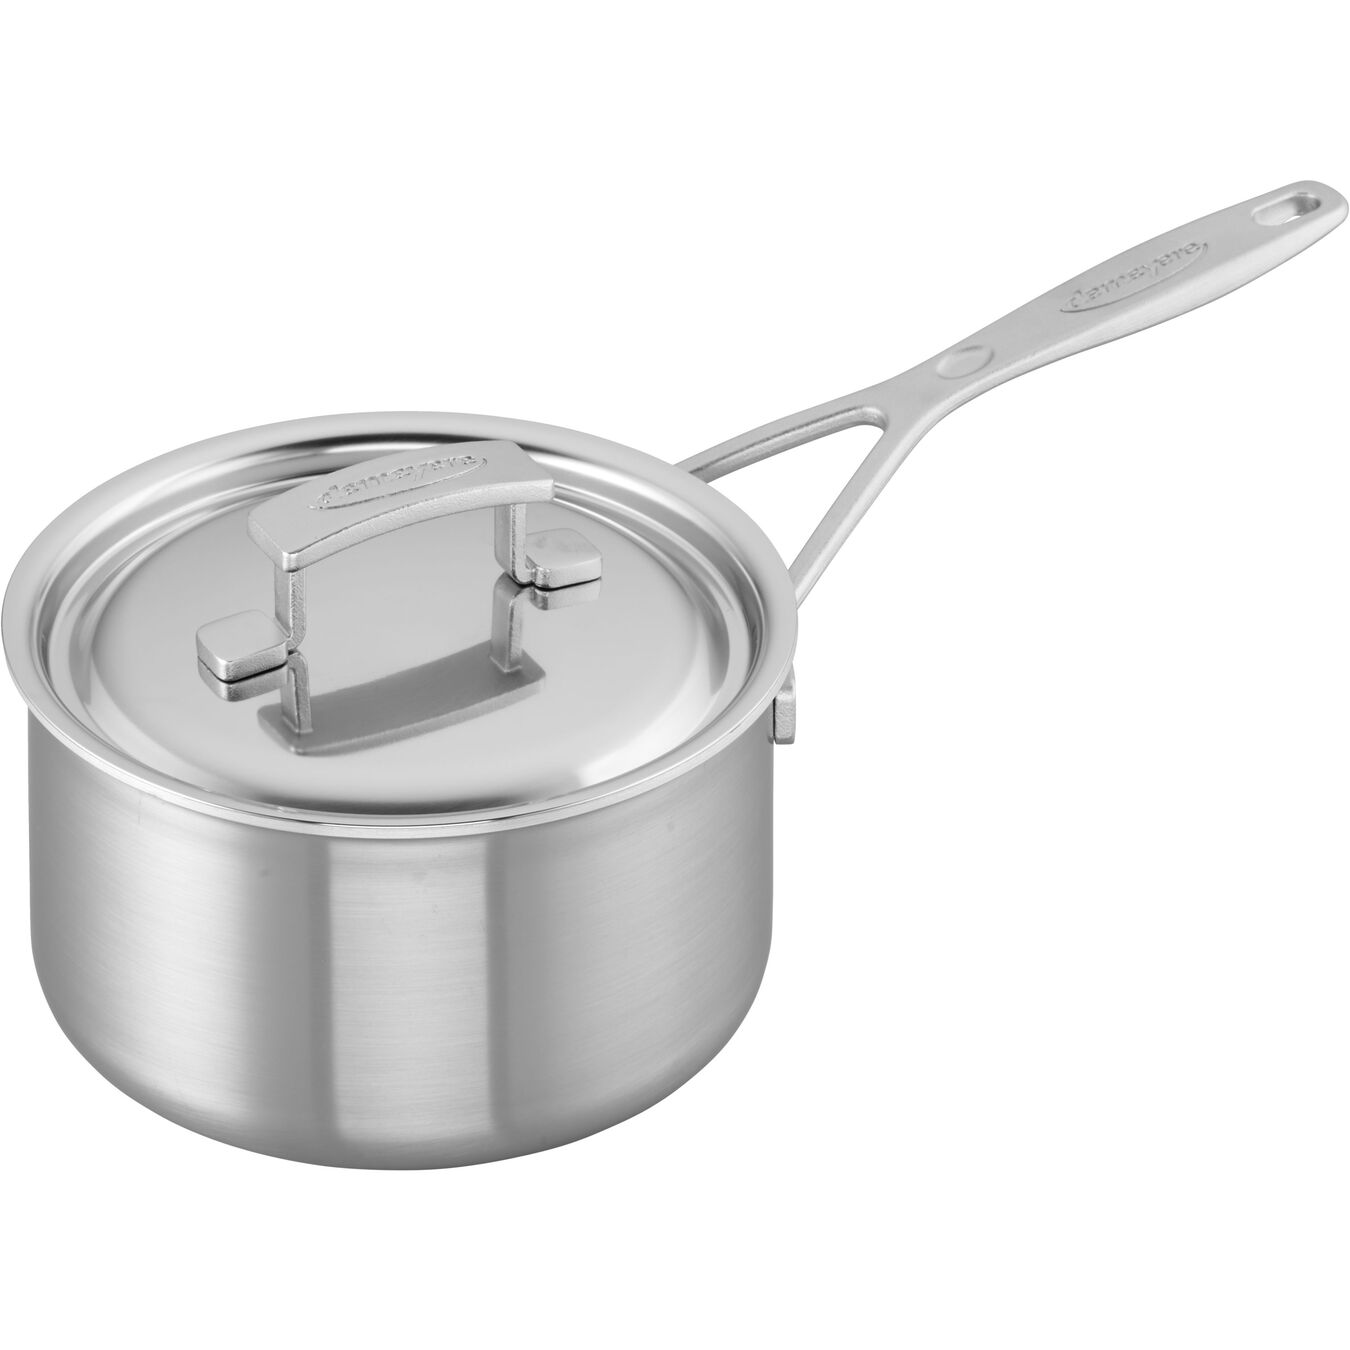 1.75 qt Saucepan with Lid, 18/10 Stainless Steel ,,large 1